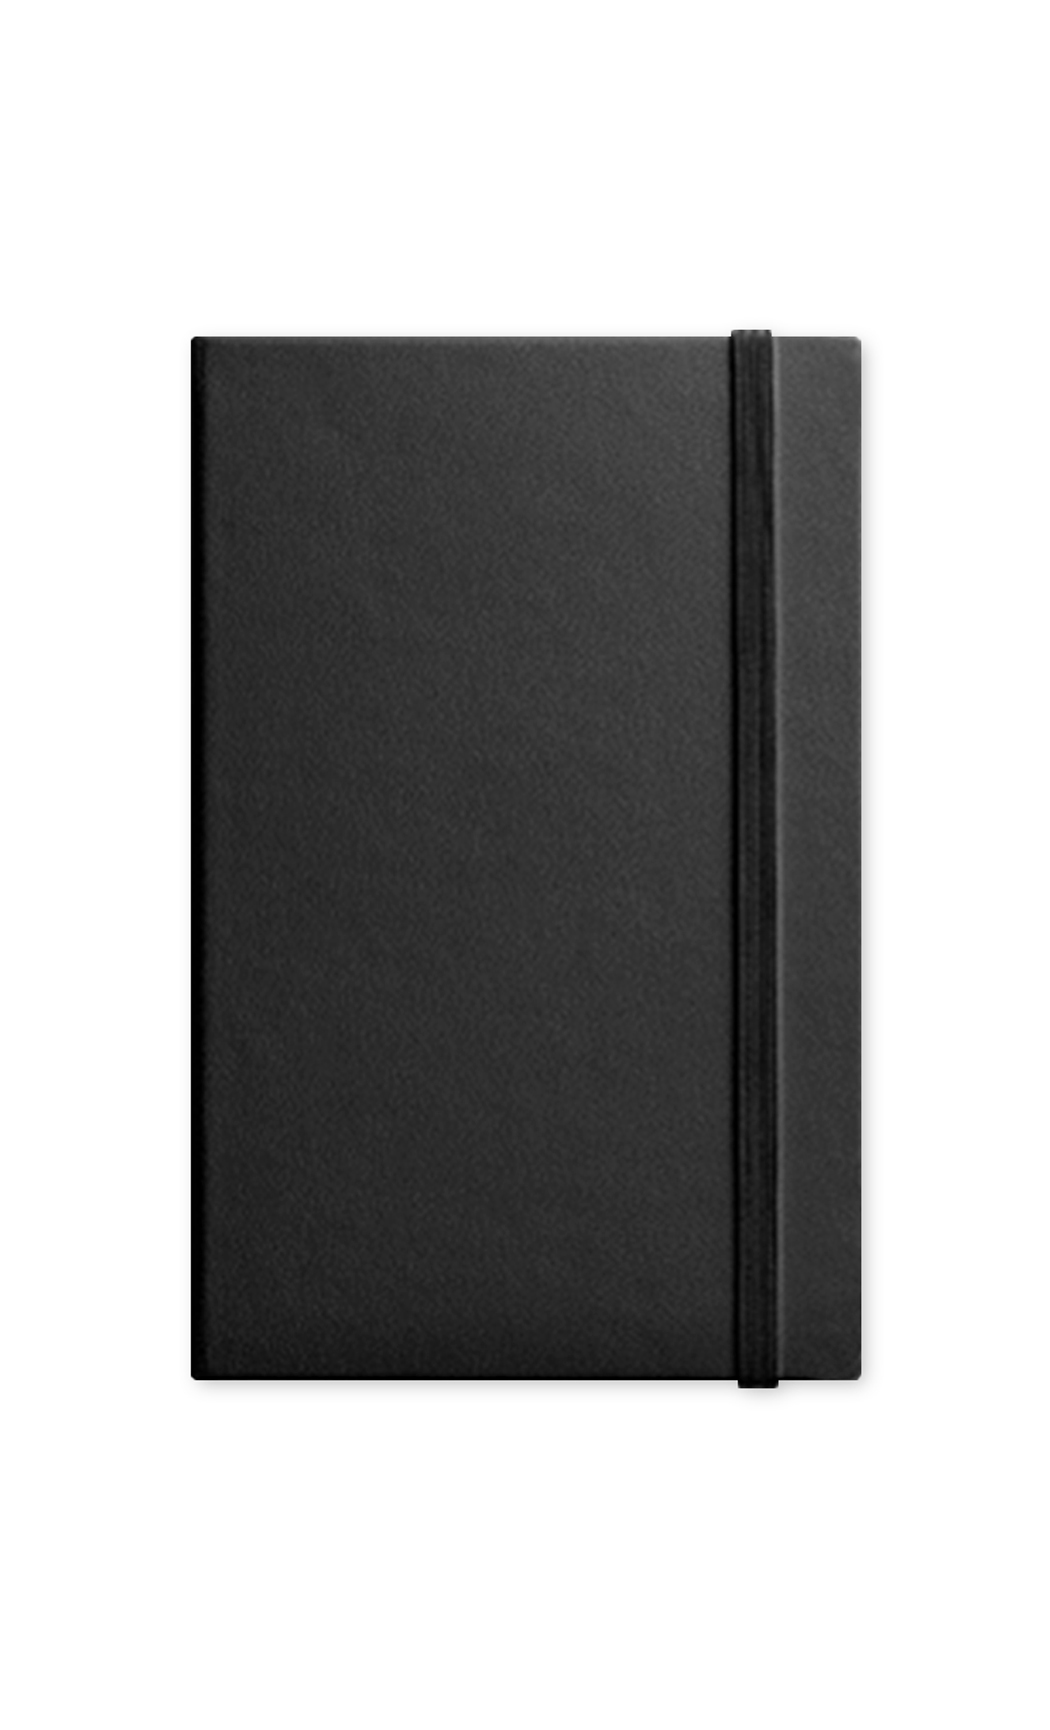 Black Journal with Elastic Band. Buy Online.